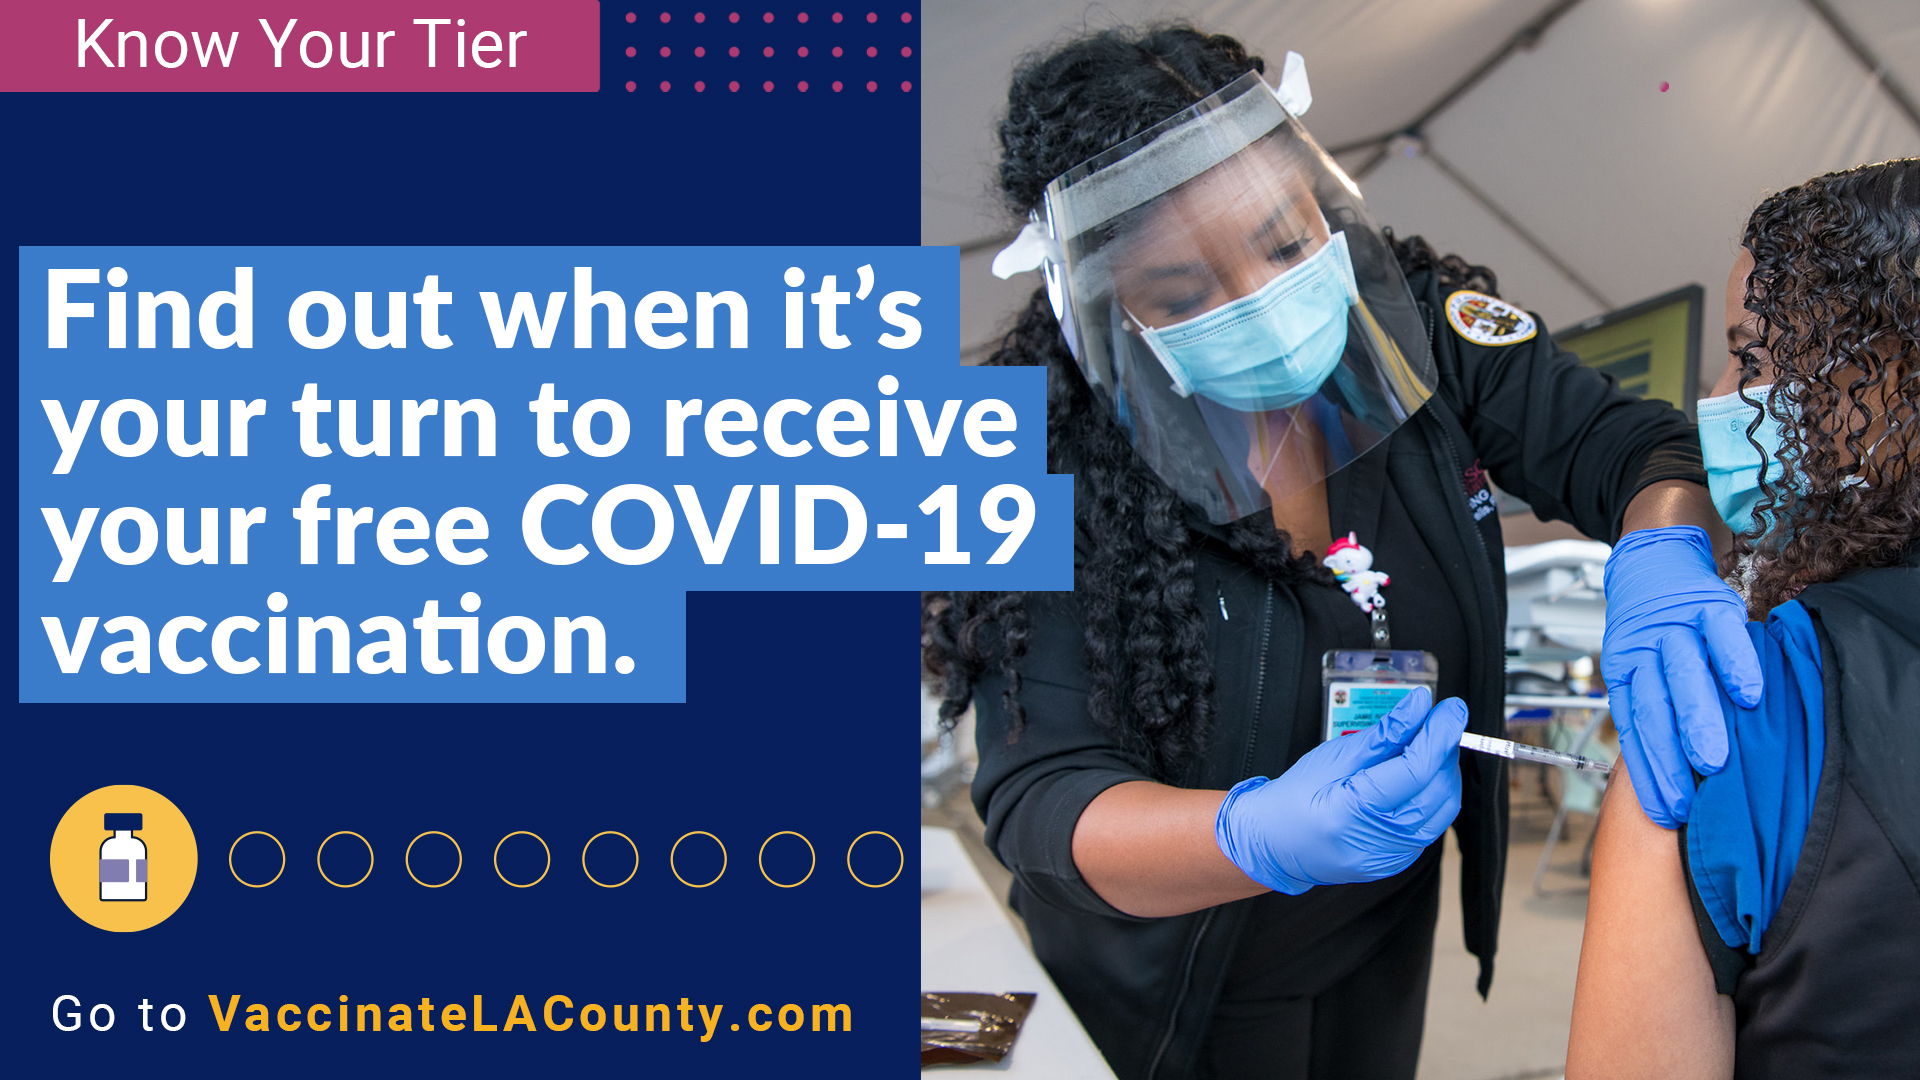 Know Your Tier. Find out when it's your turn to receive your free COVID-19 vaccination.